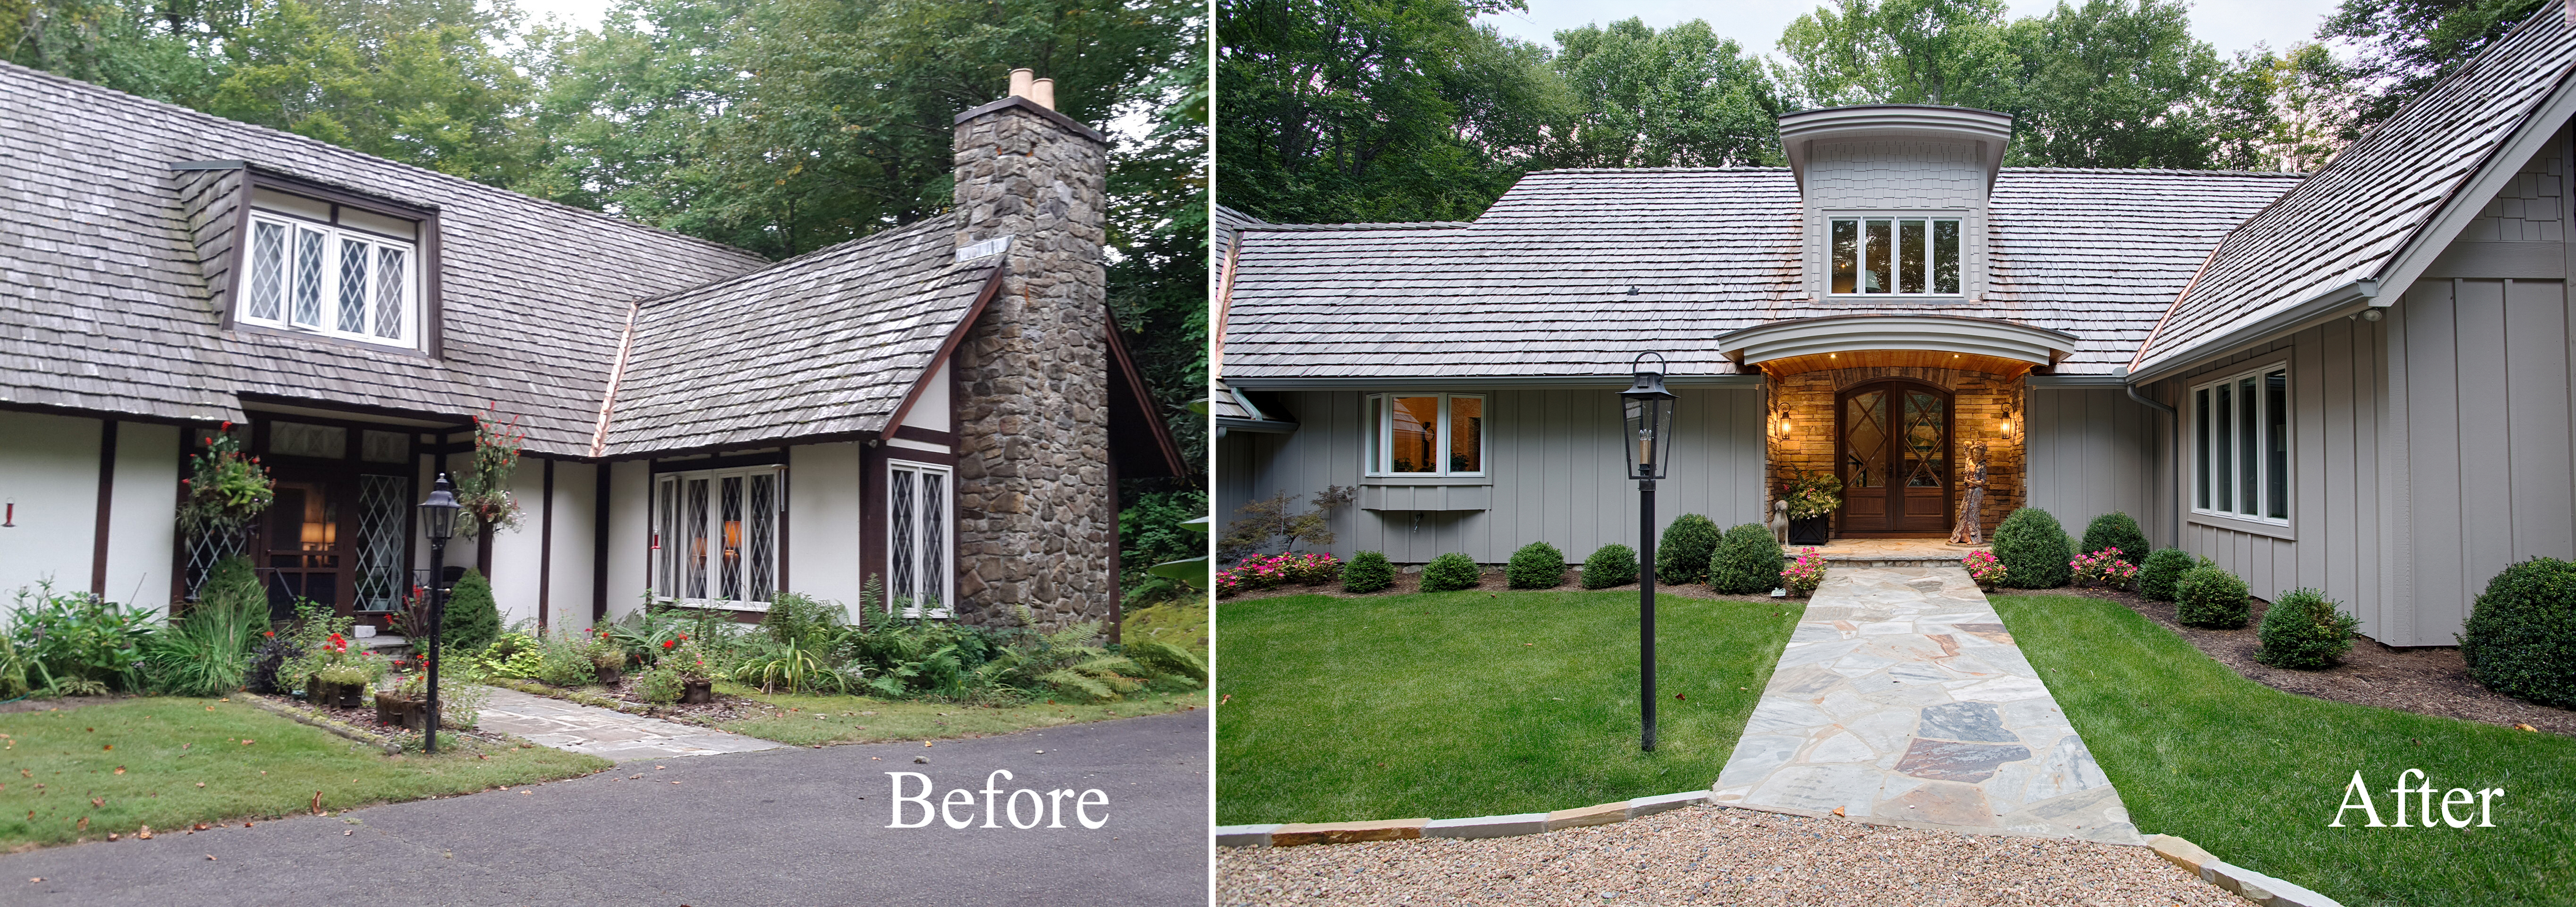 Eseeola Renovation Before After-1